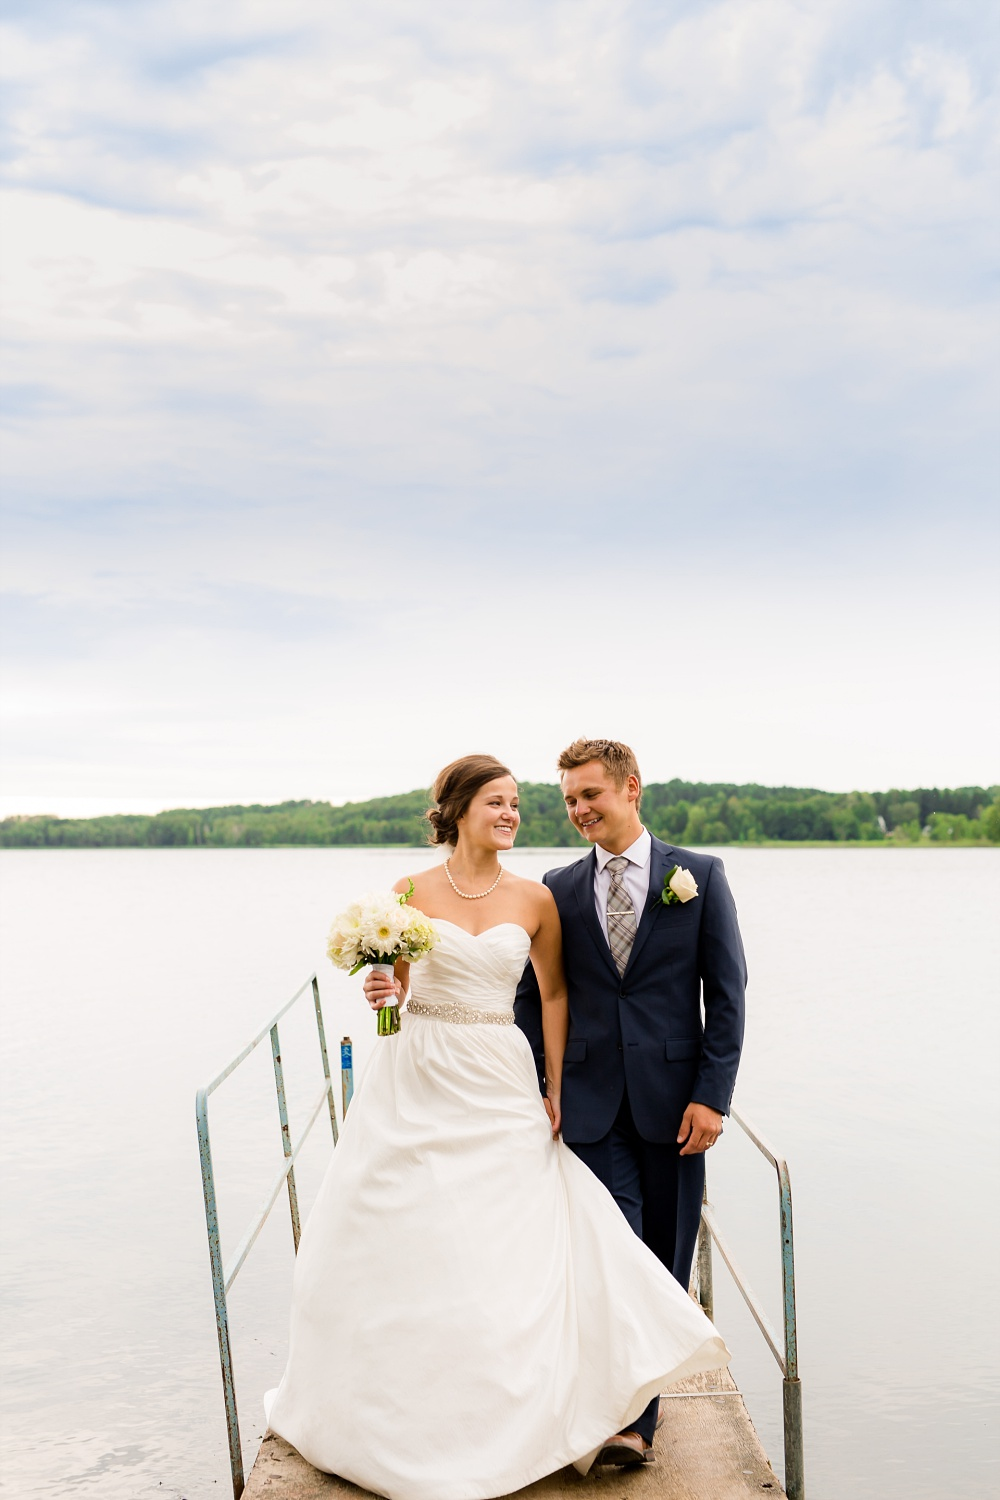 Wolf Lake, MN Country Styled Wedding, White Dress, Blue Suite | Photographed by Amber Langerud Photography | Bride & Groom Walking on a Dock